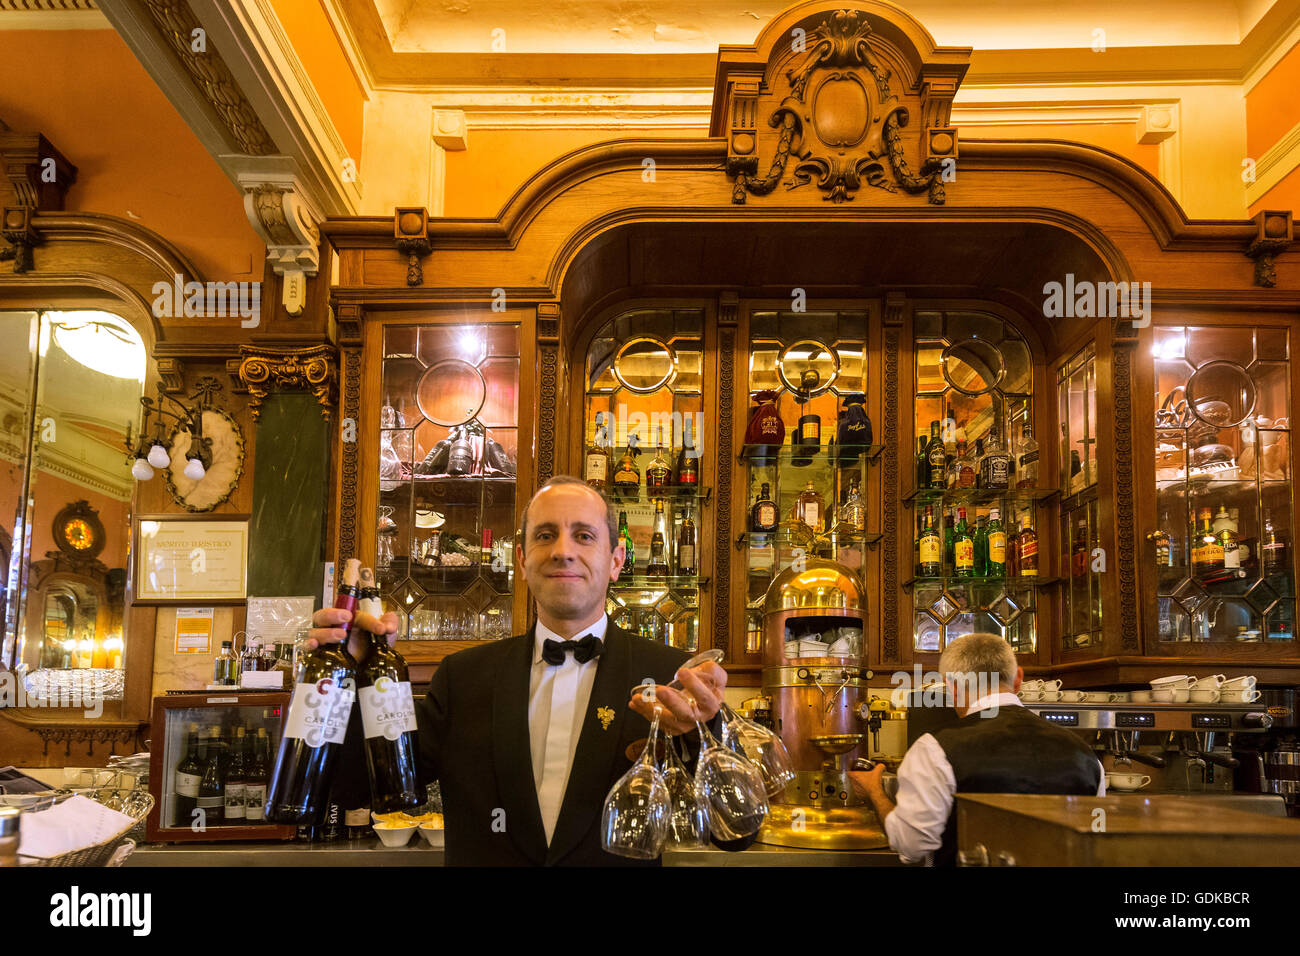 Café Majestic, art nouveau cafe, tavern, guests at tables, Panorama, Dining Restaurant, Porto, District of - Stock Image